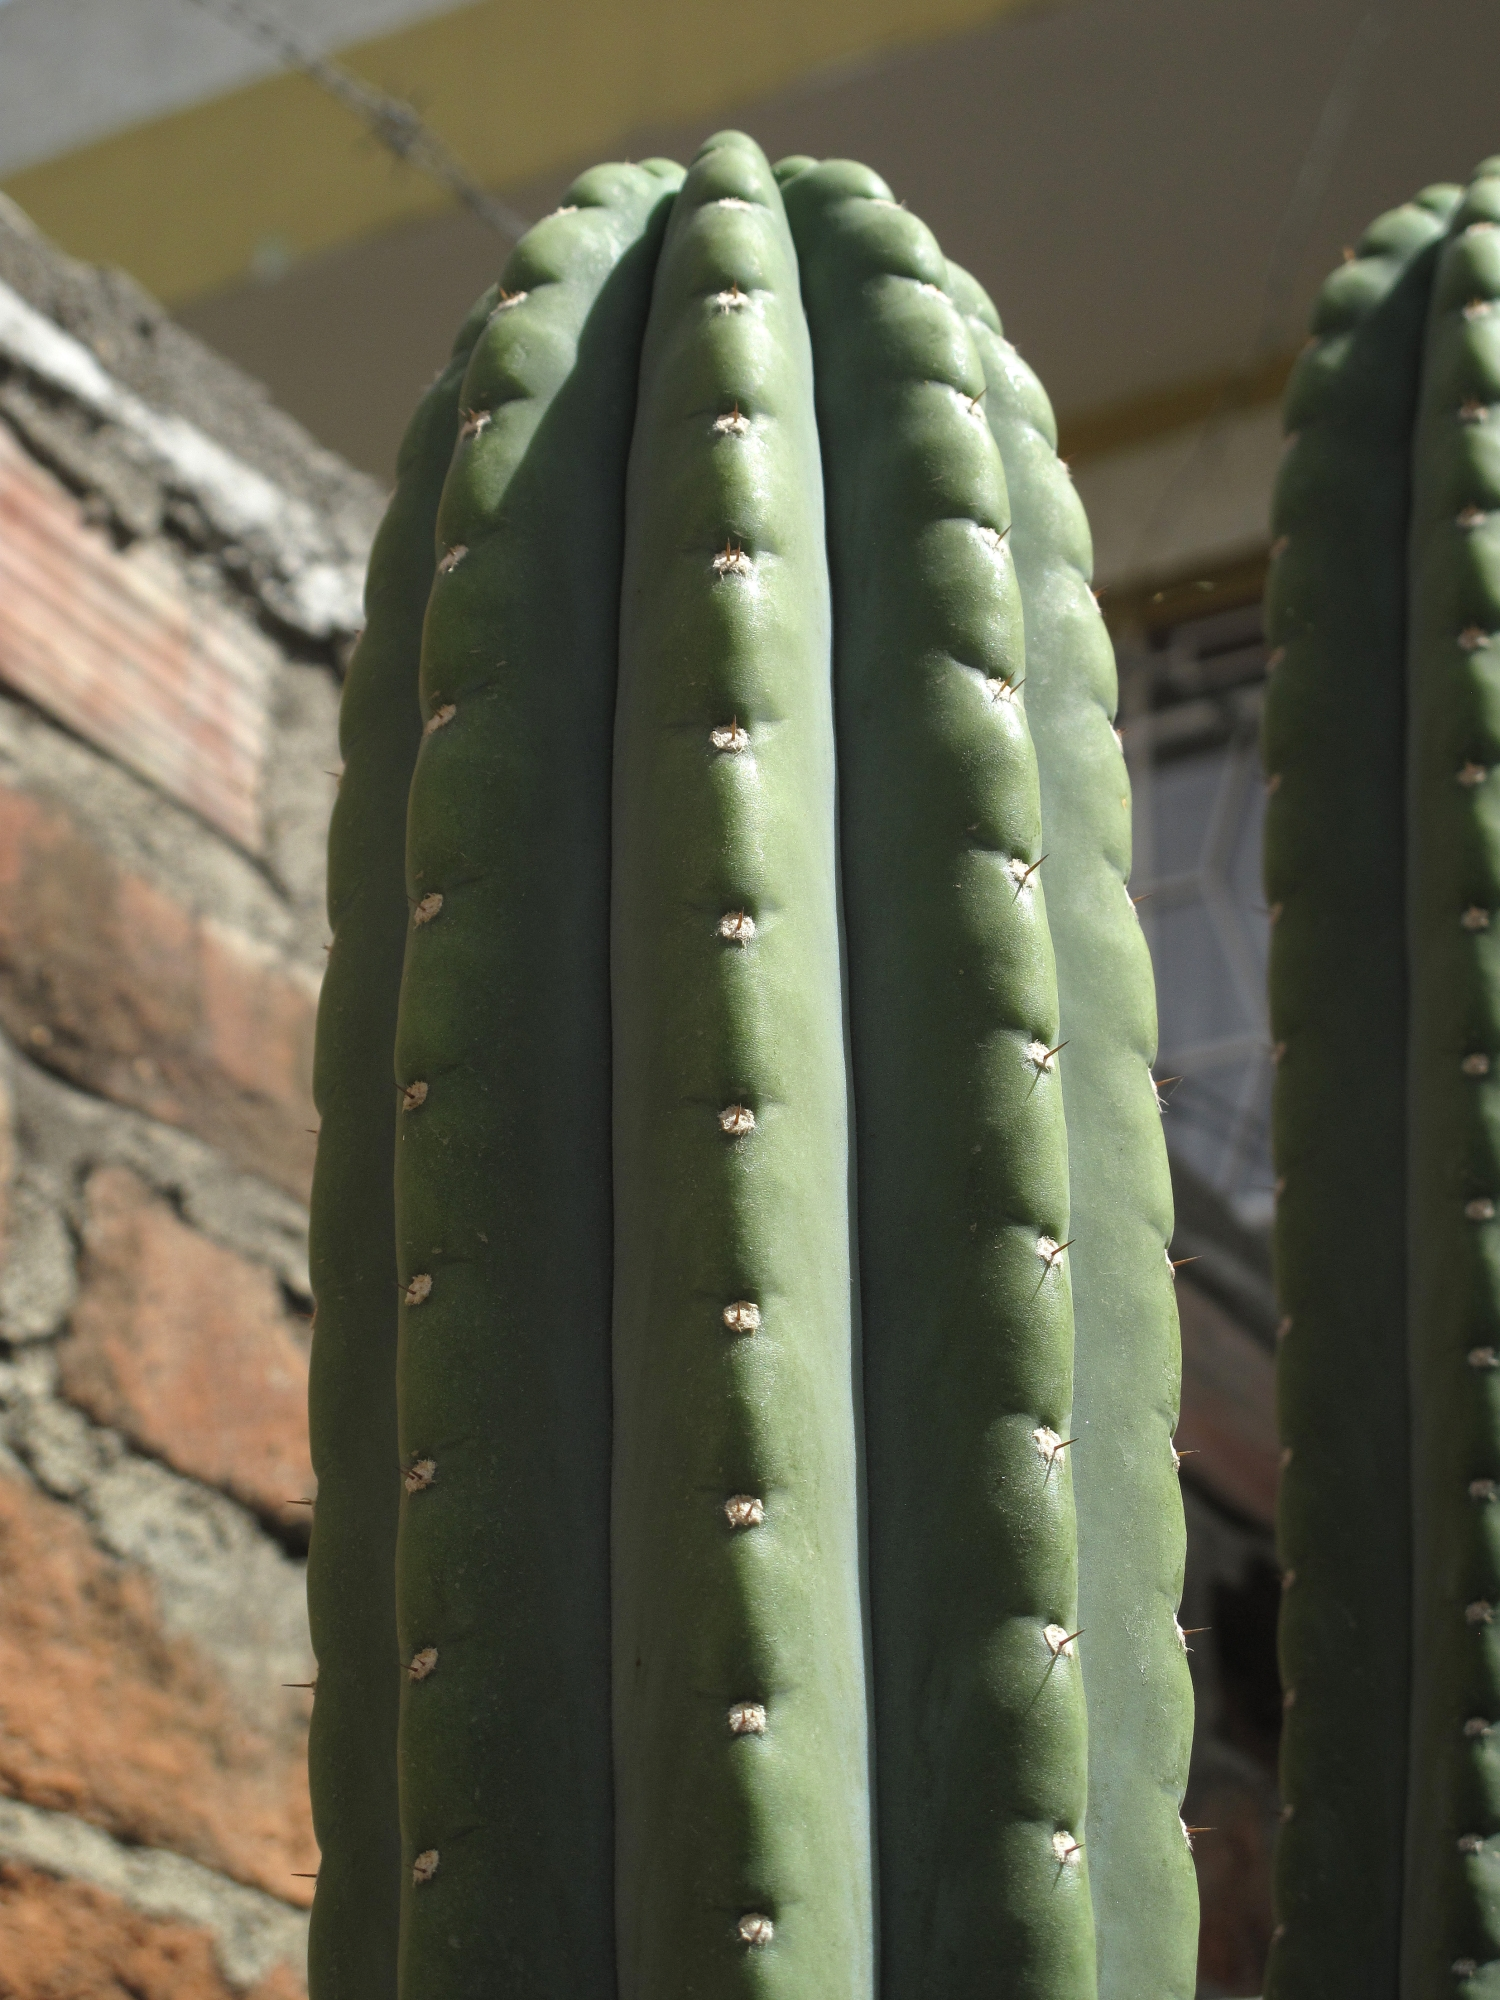 Trichocereus pachanoi Clone Two